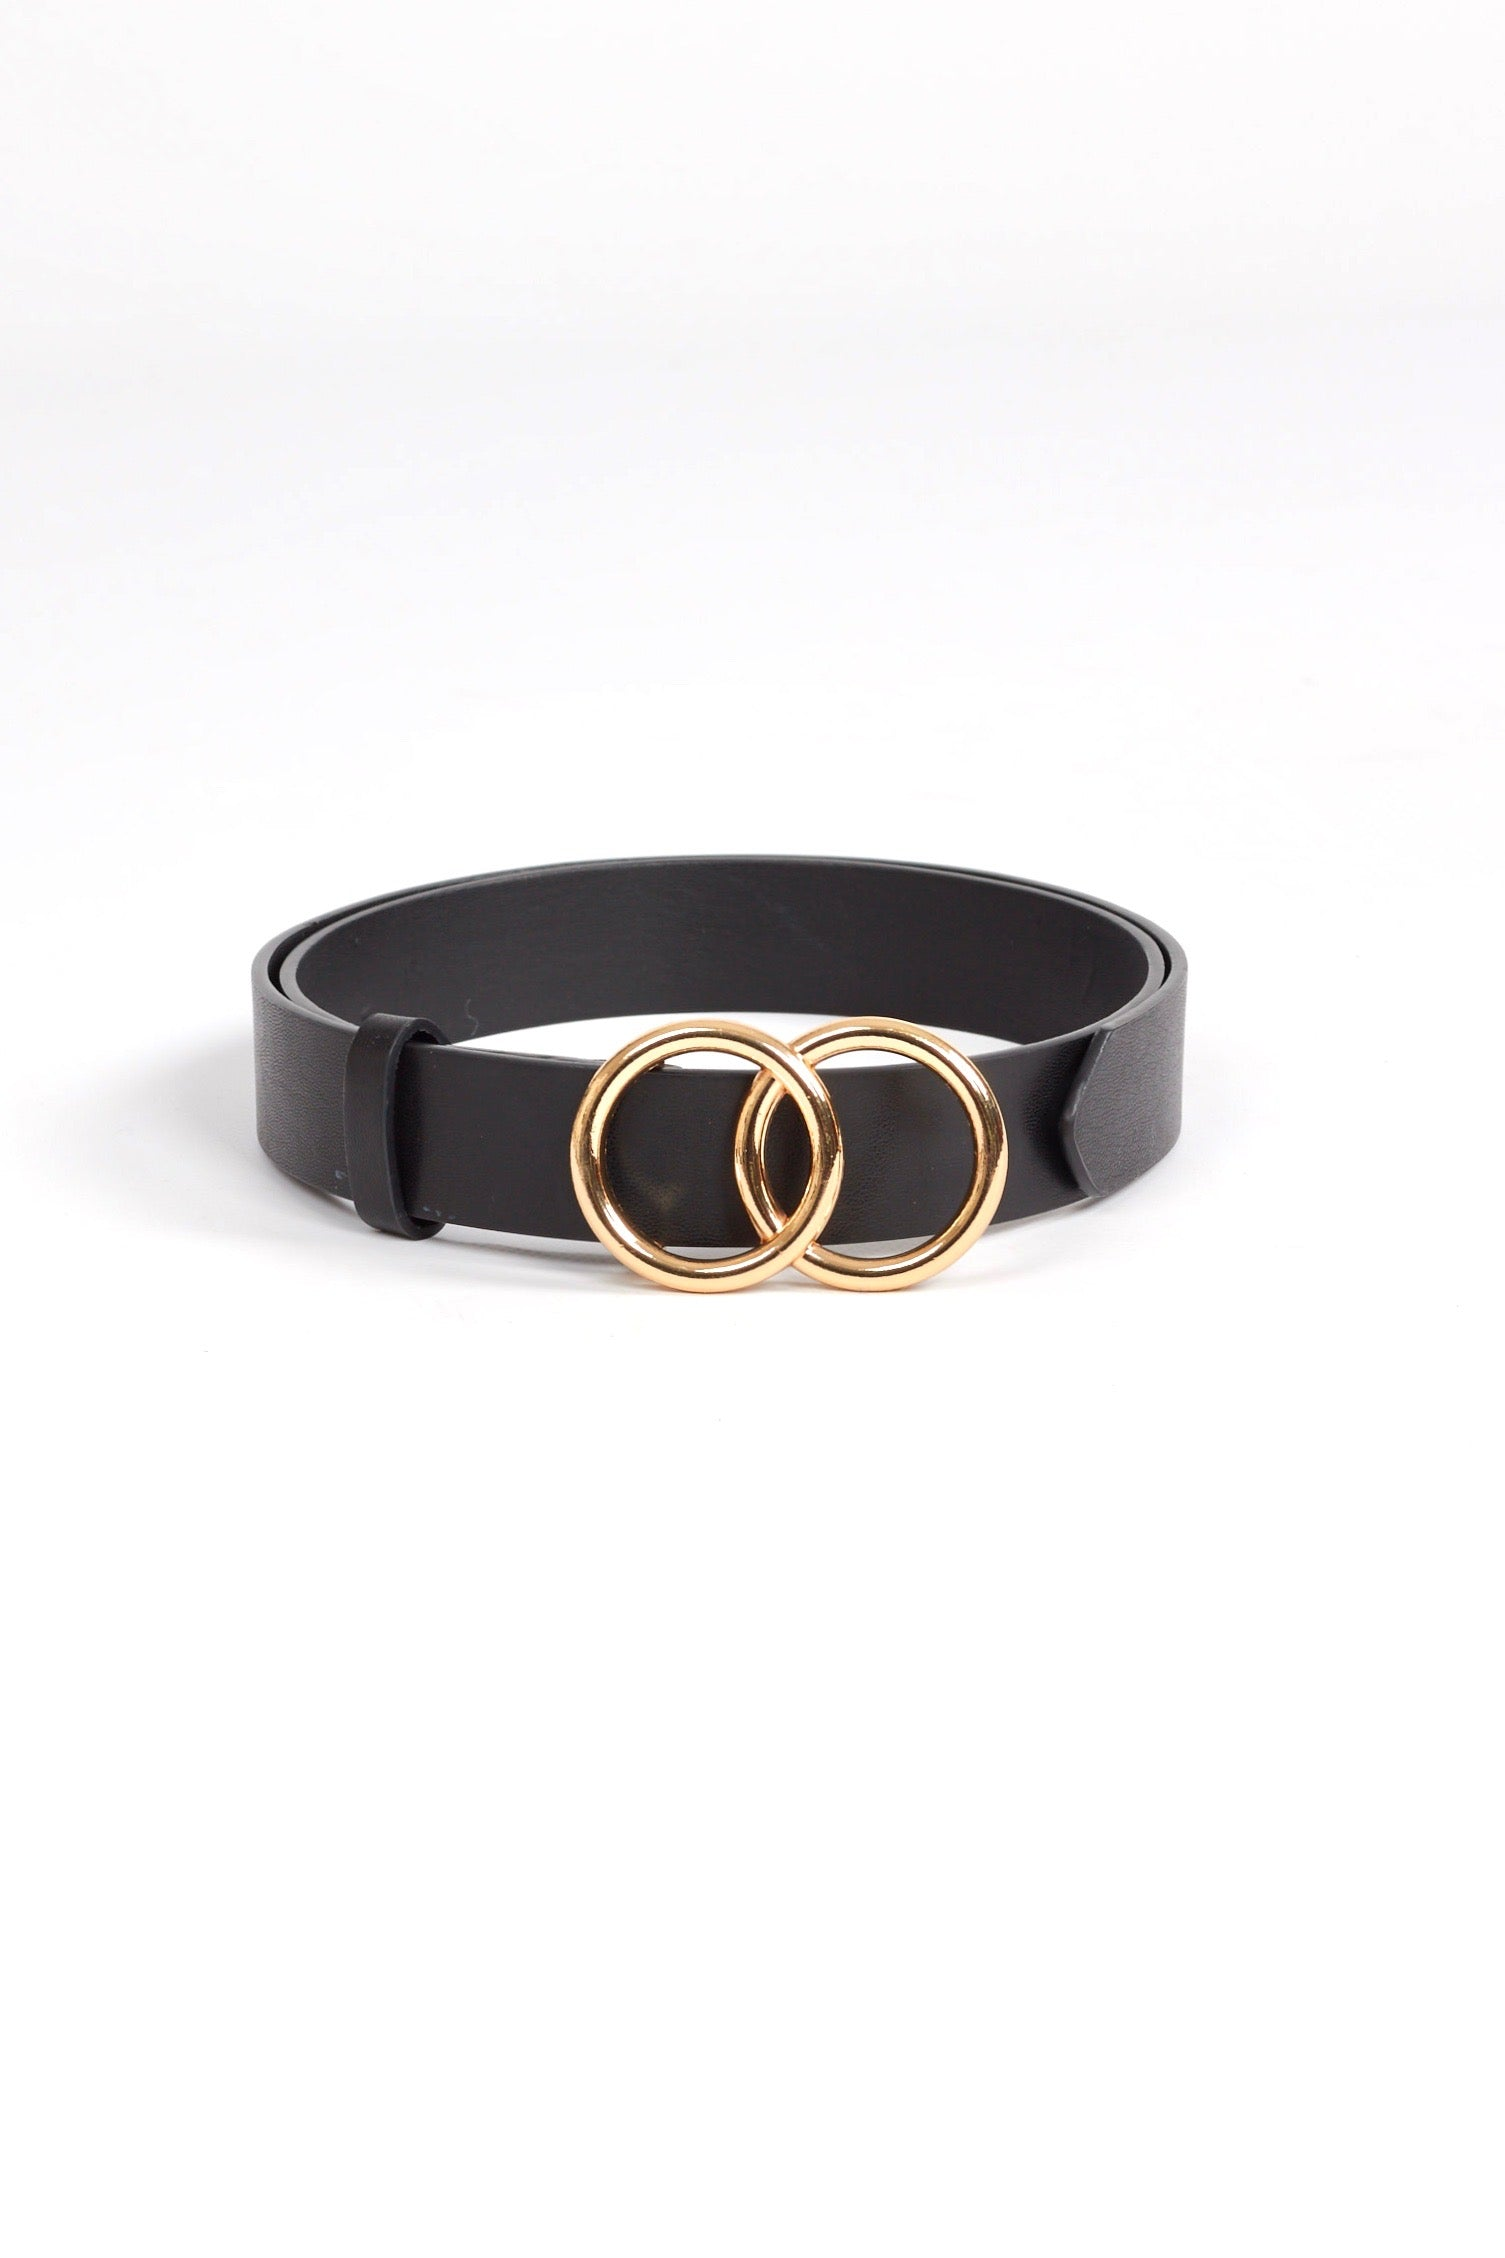 Black vegan leather belt with gold toned metal double circle belt buckle. Free shipping on domestic orders over $75. Afterpay available. We ship worldwide!